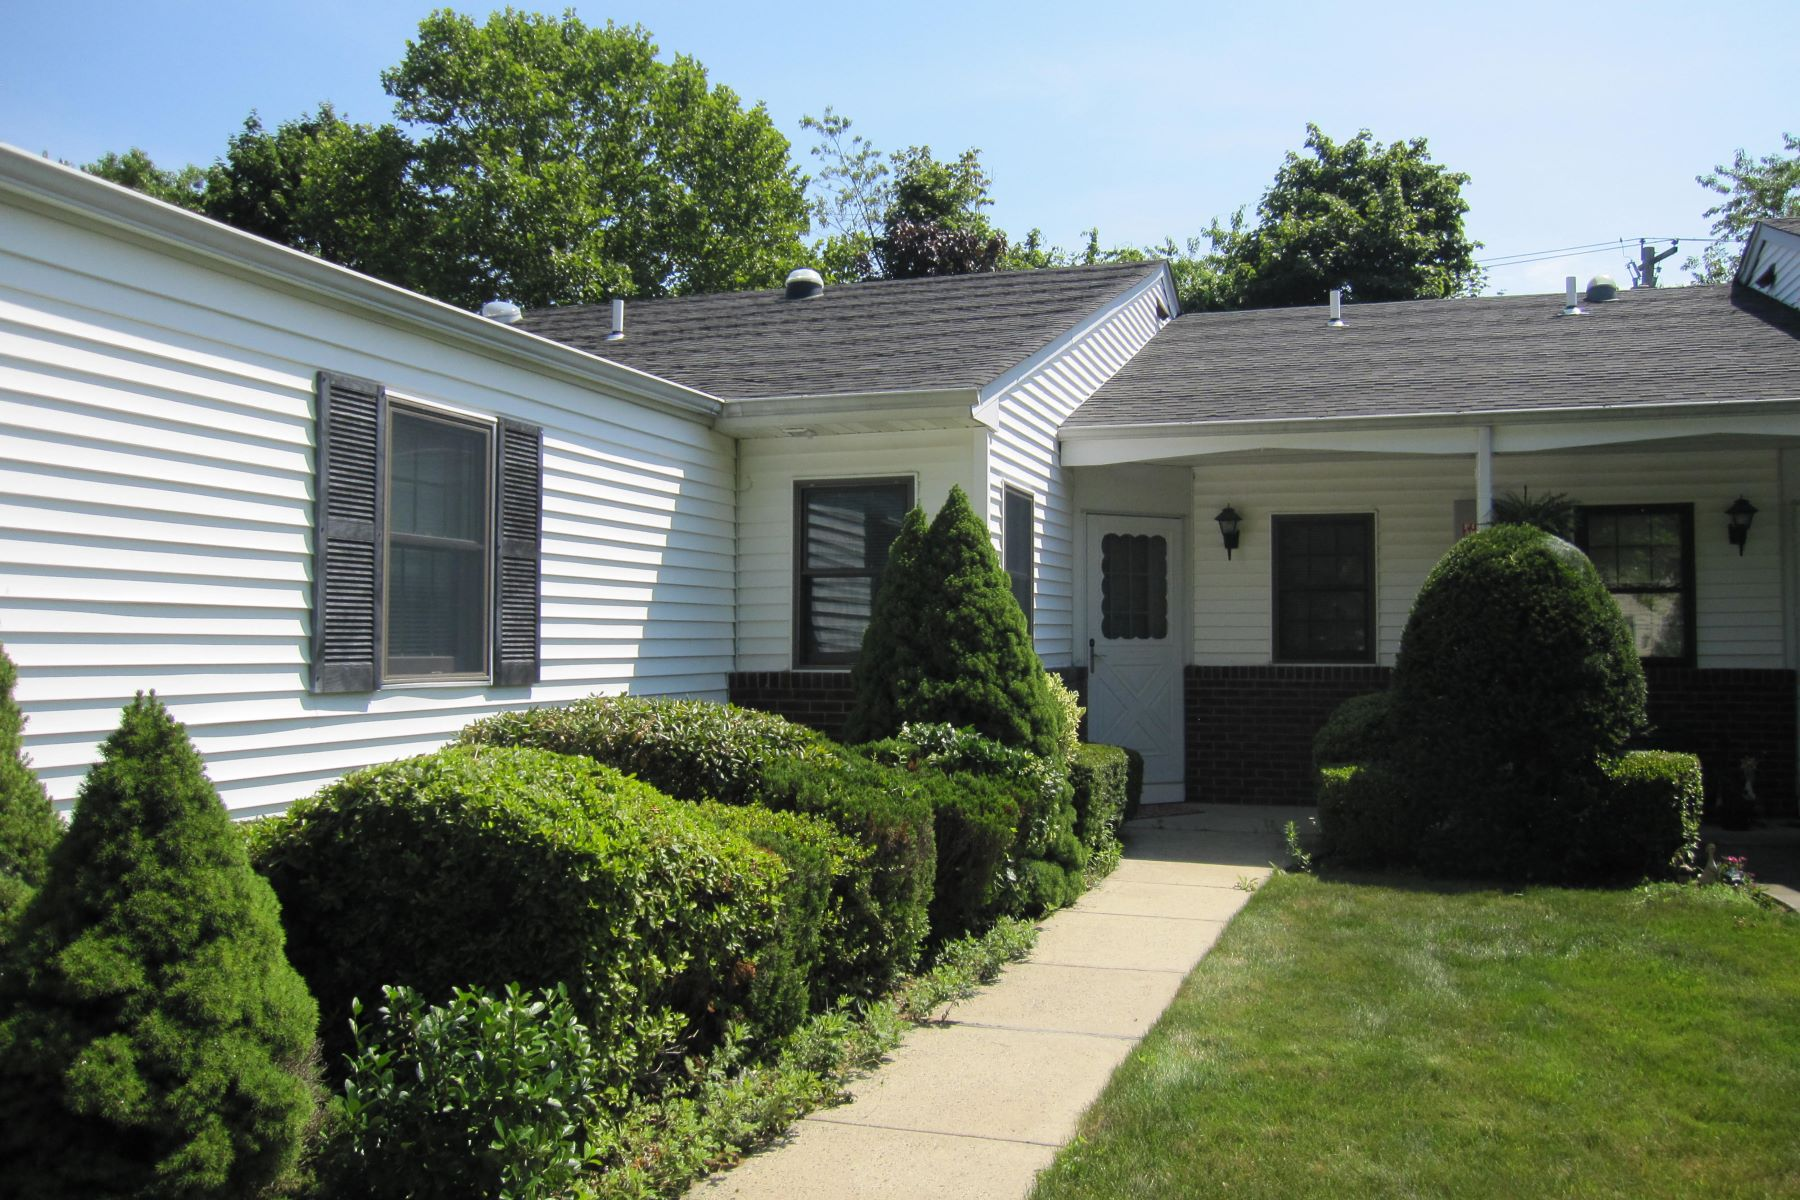 Condominium for Sale at 36 Knolls Dr 36 Knolls Dr Stony Brook, New York, 11790 United States